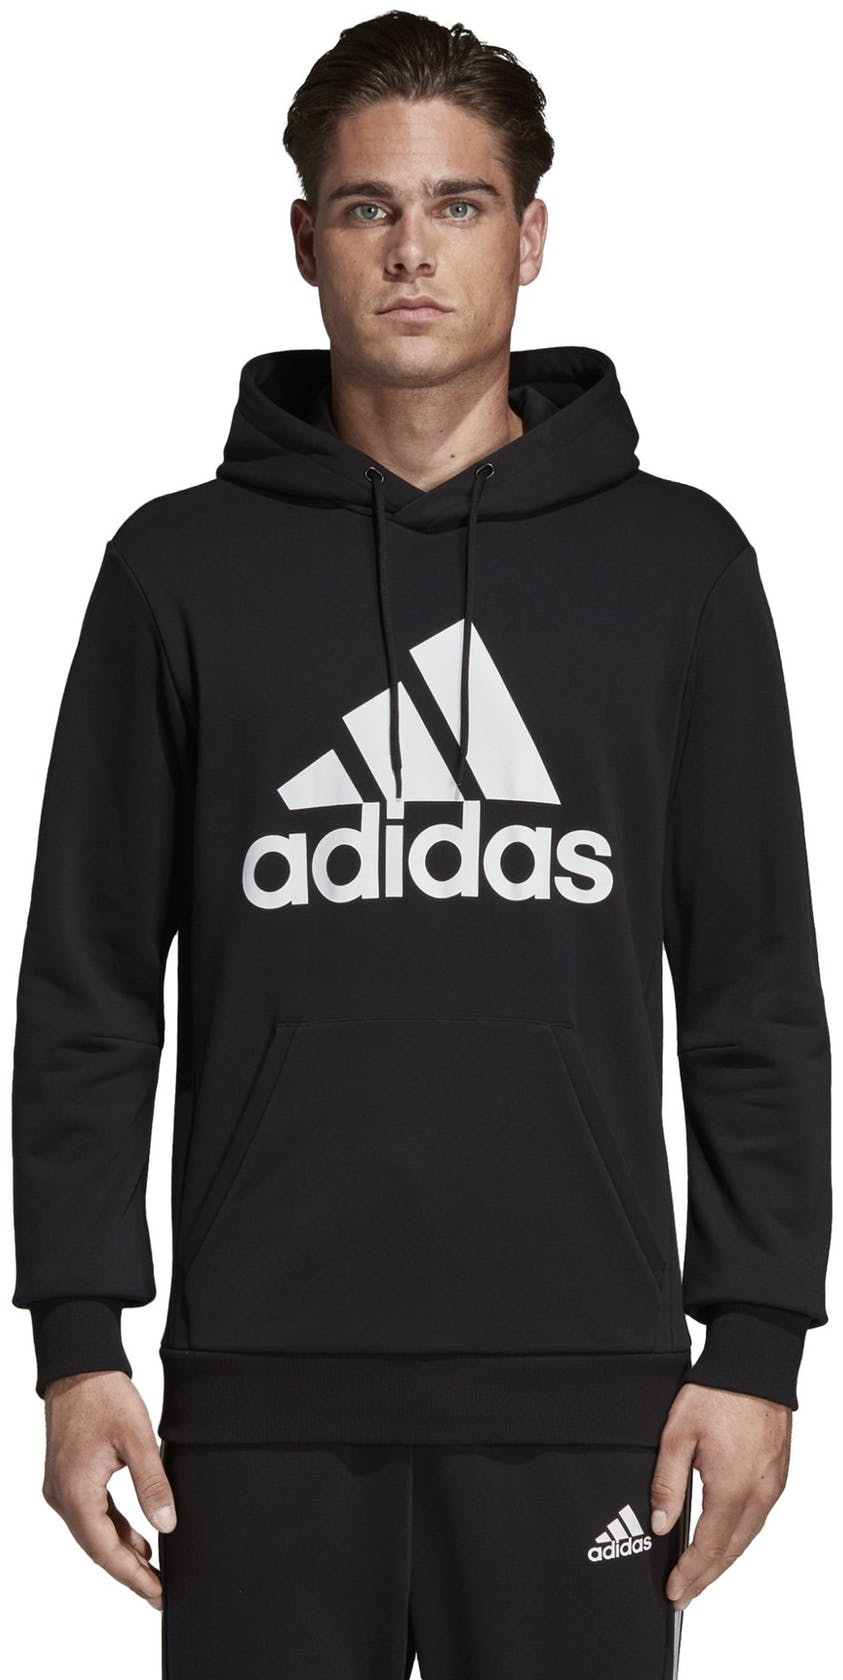 adidas Must Haves Badge of Sport - felpa con cappuccio - uomo